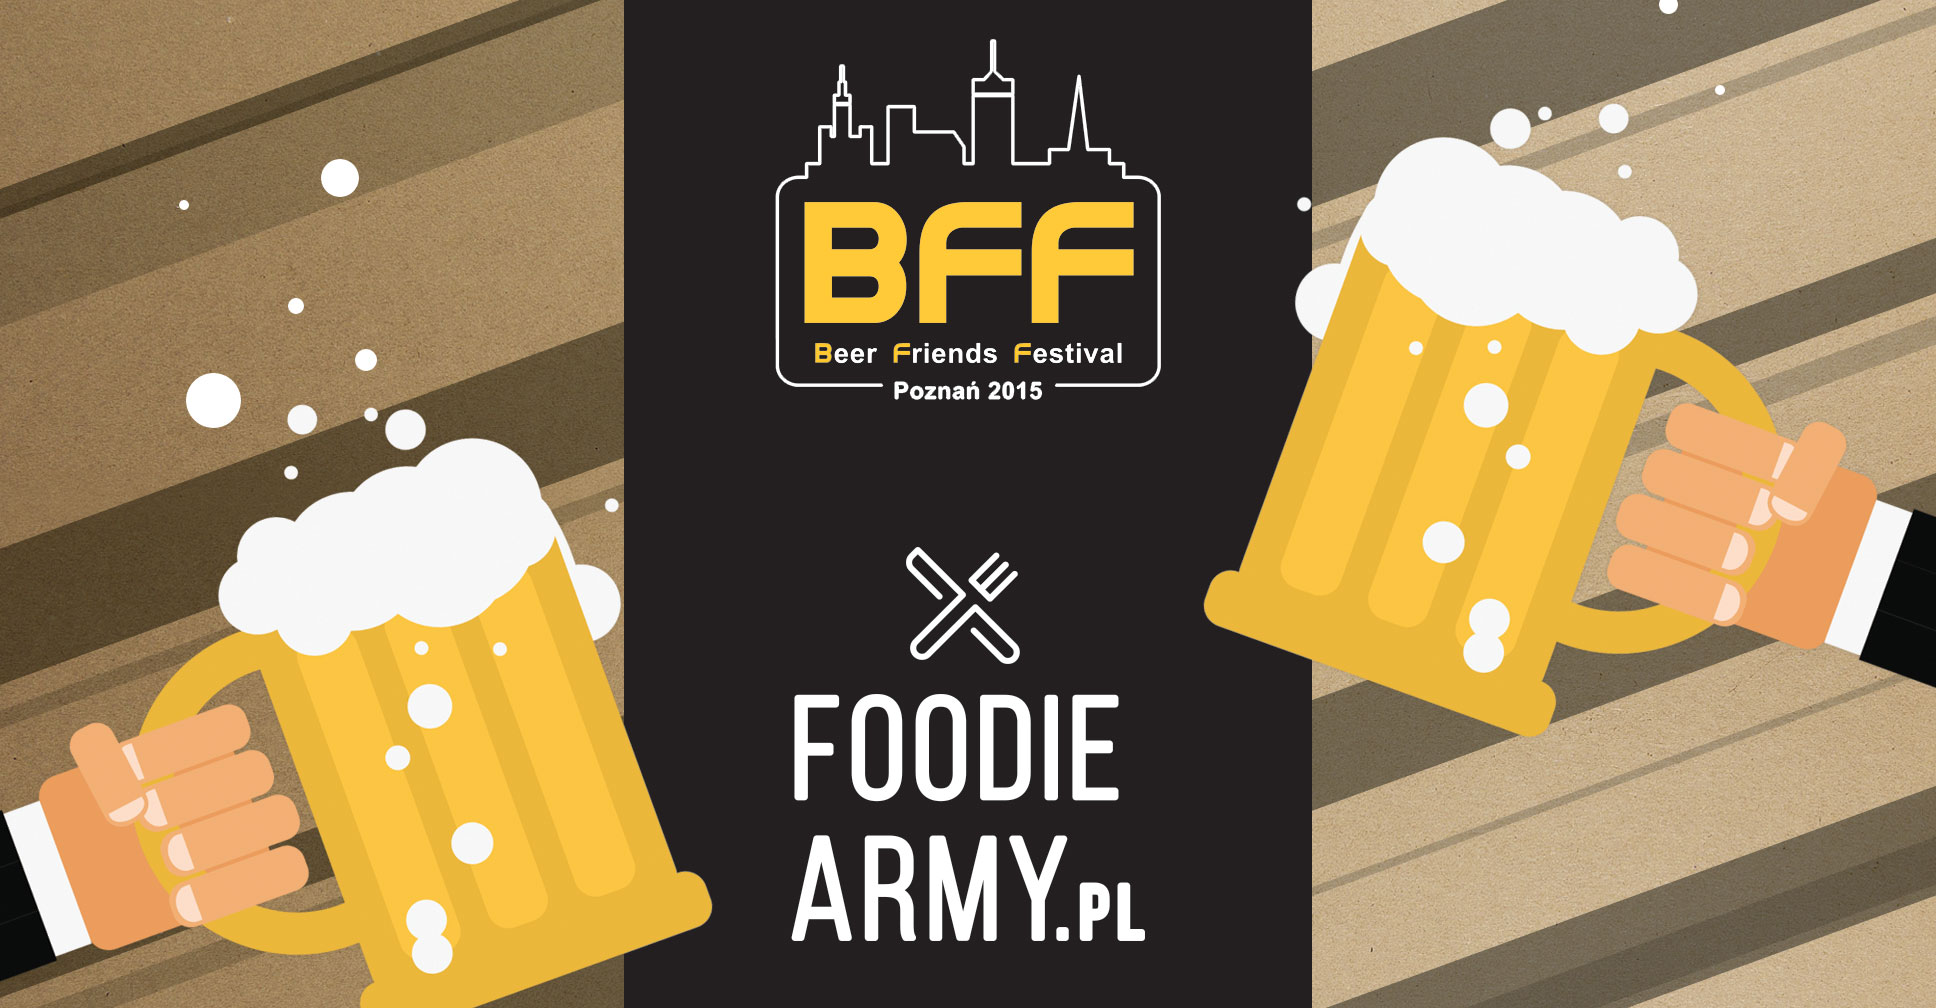 Beer Friends Festival Foodie Army Poznań